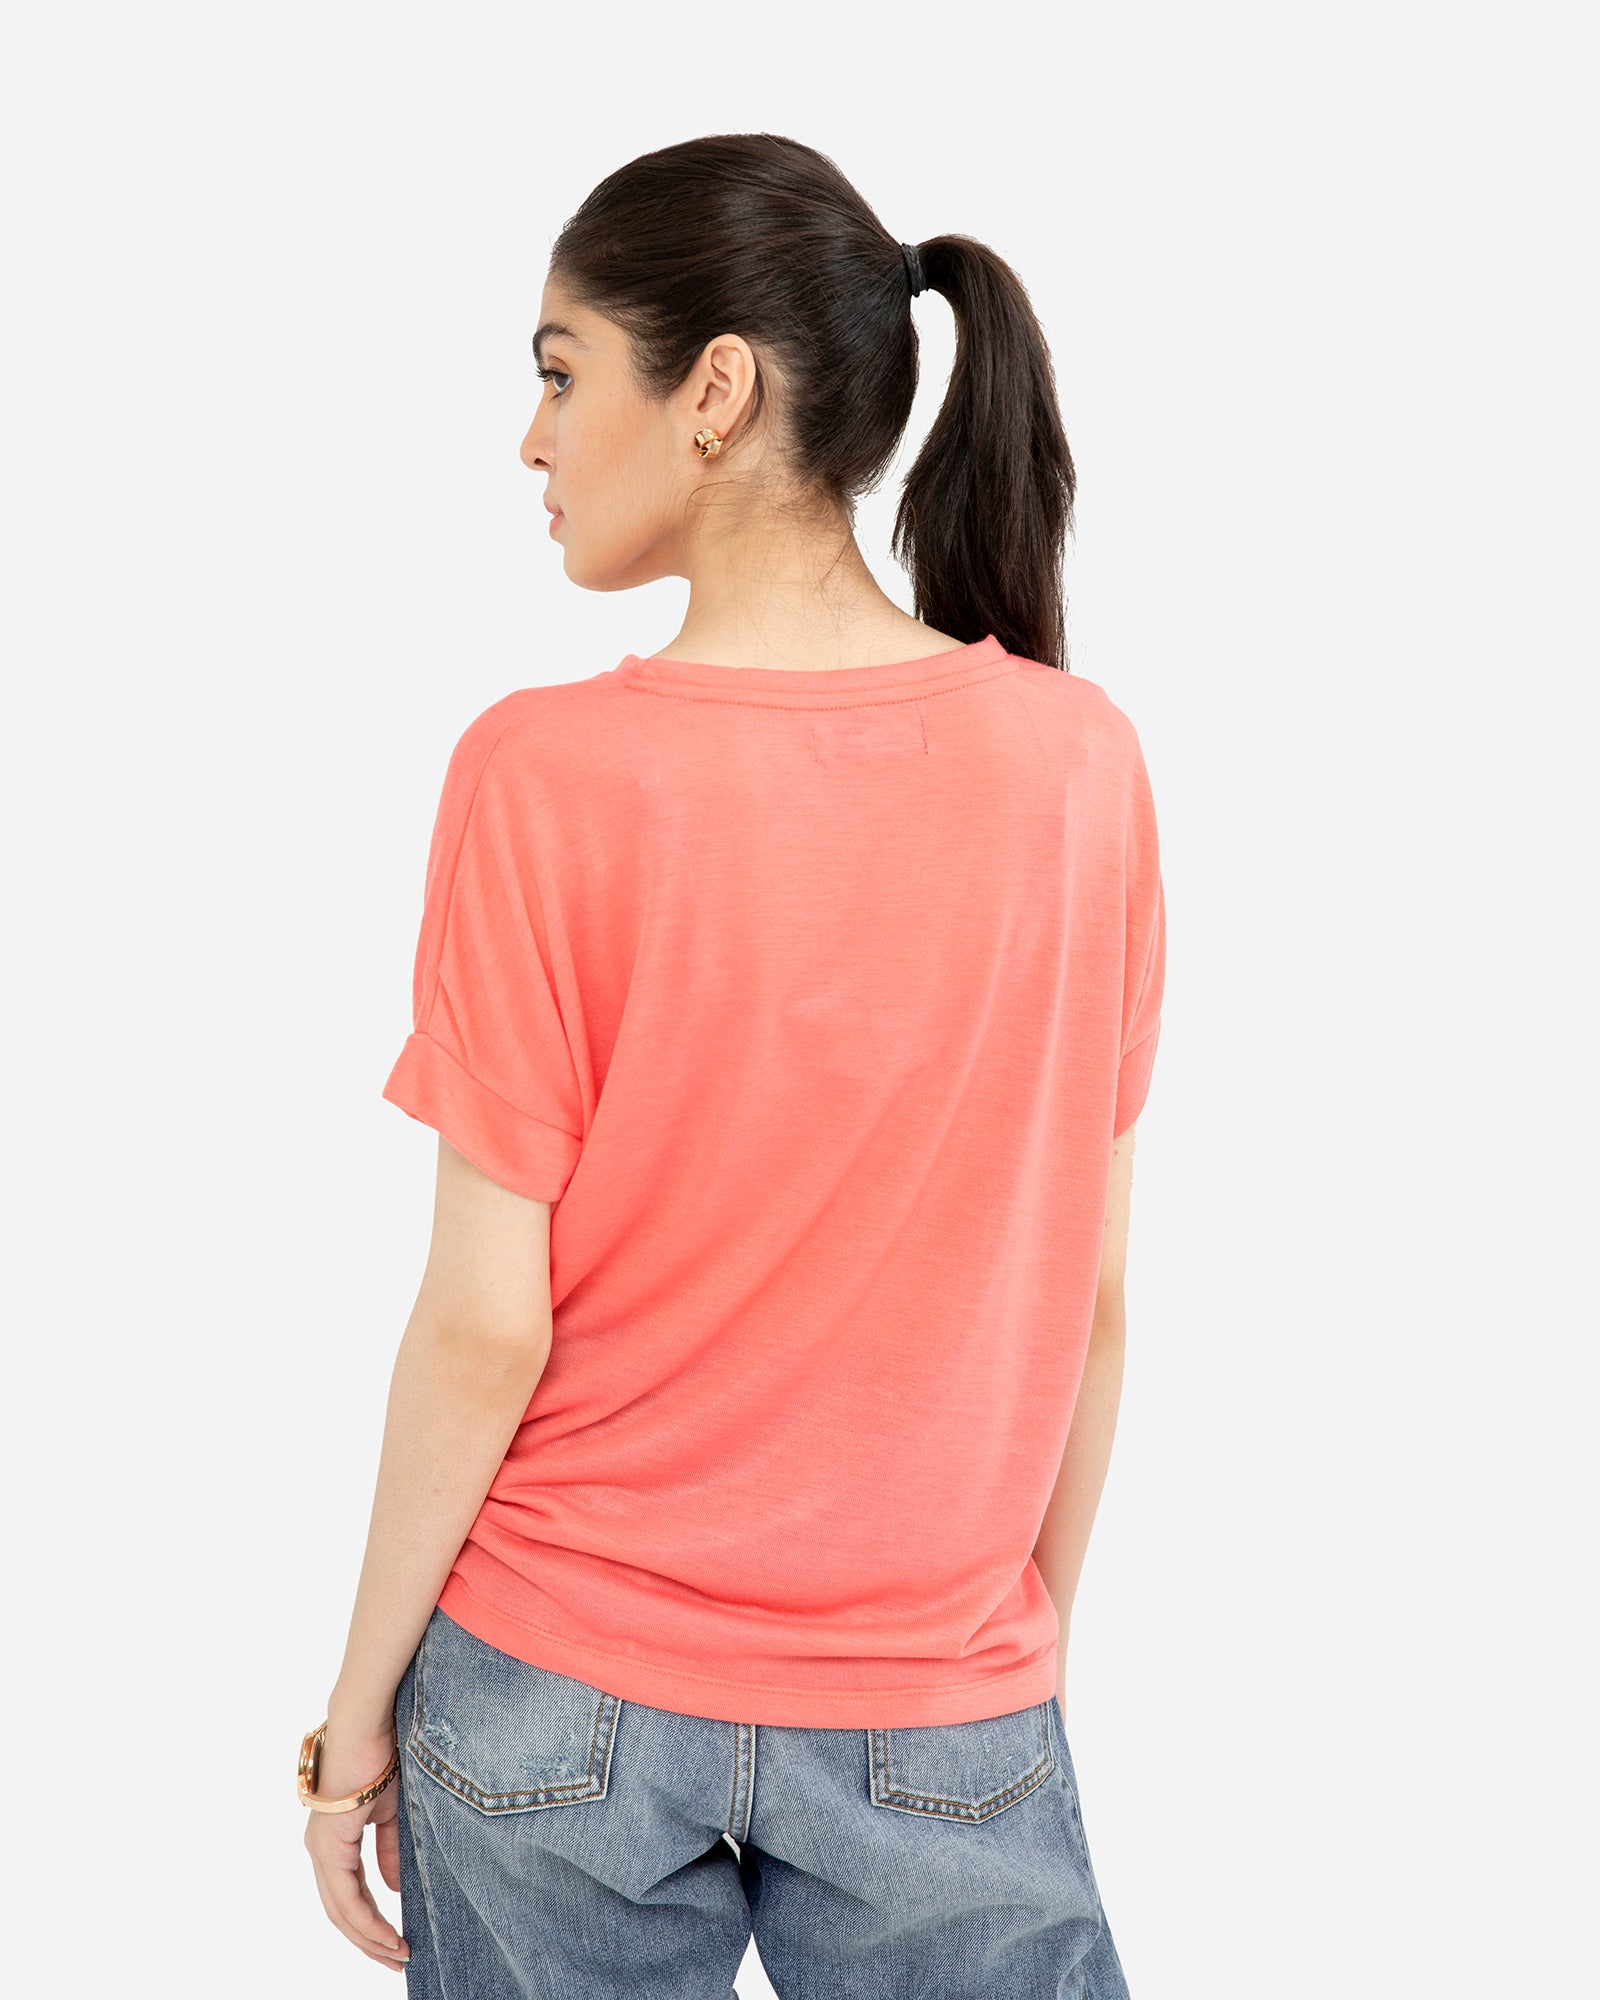 Basic Tee with Turned-Up Sleeves